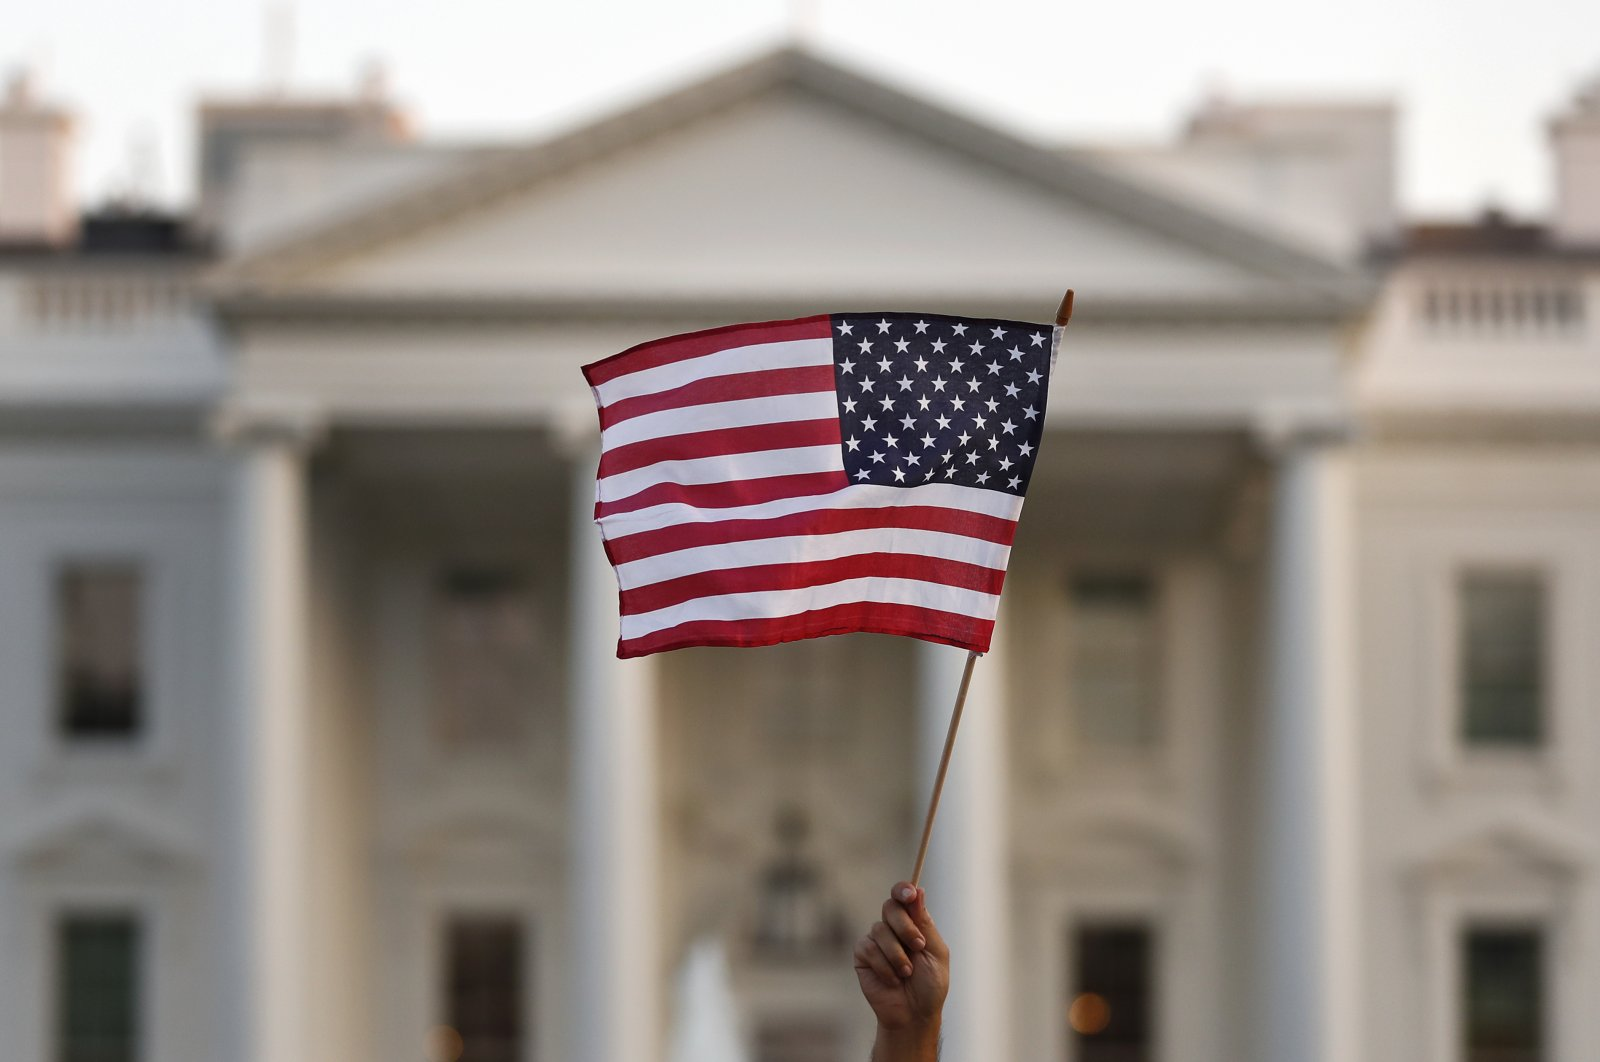 A flag is waved outside the White House, in Washington D.C., Sept. 5, 2017. (AP Photo)